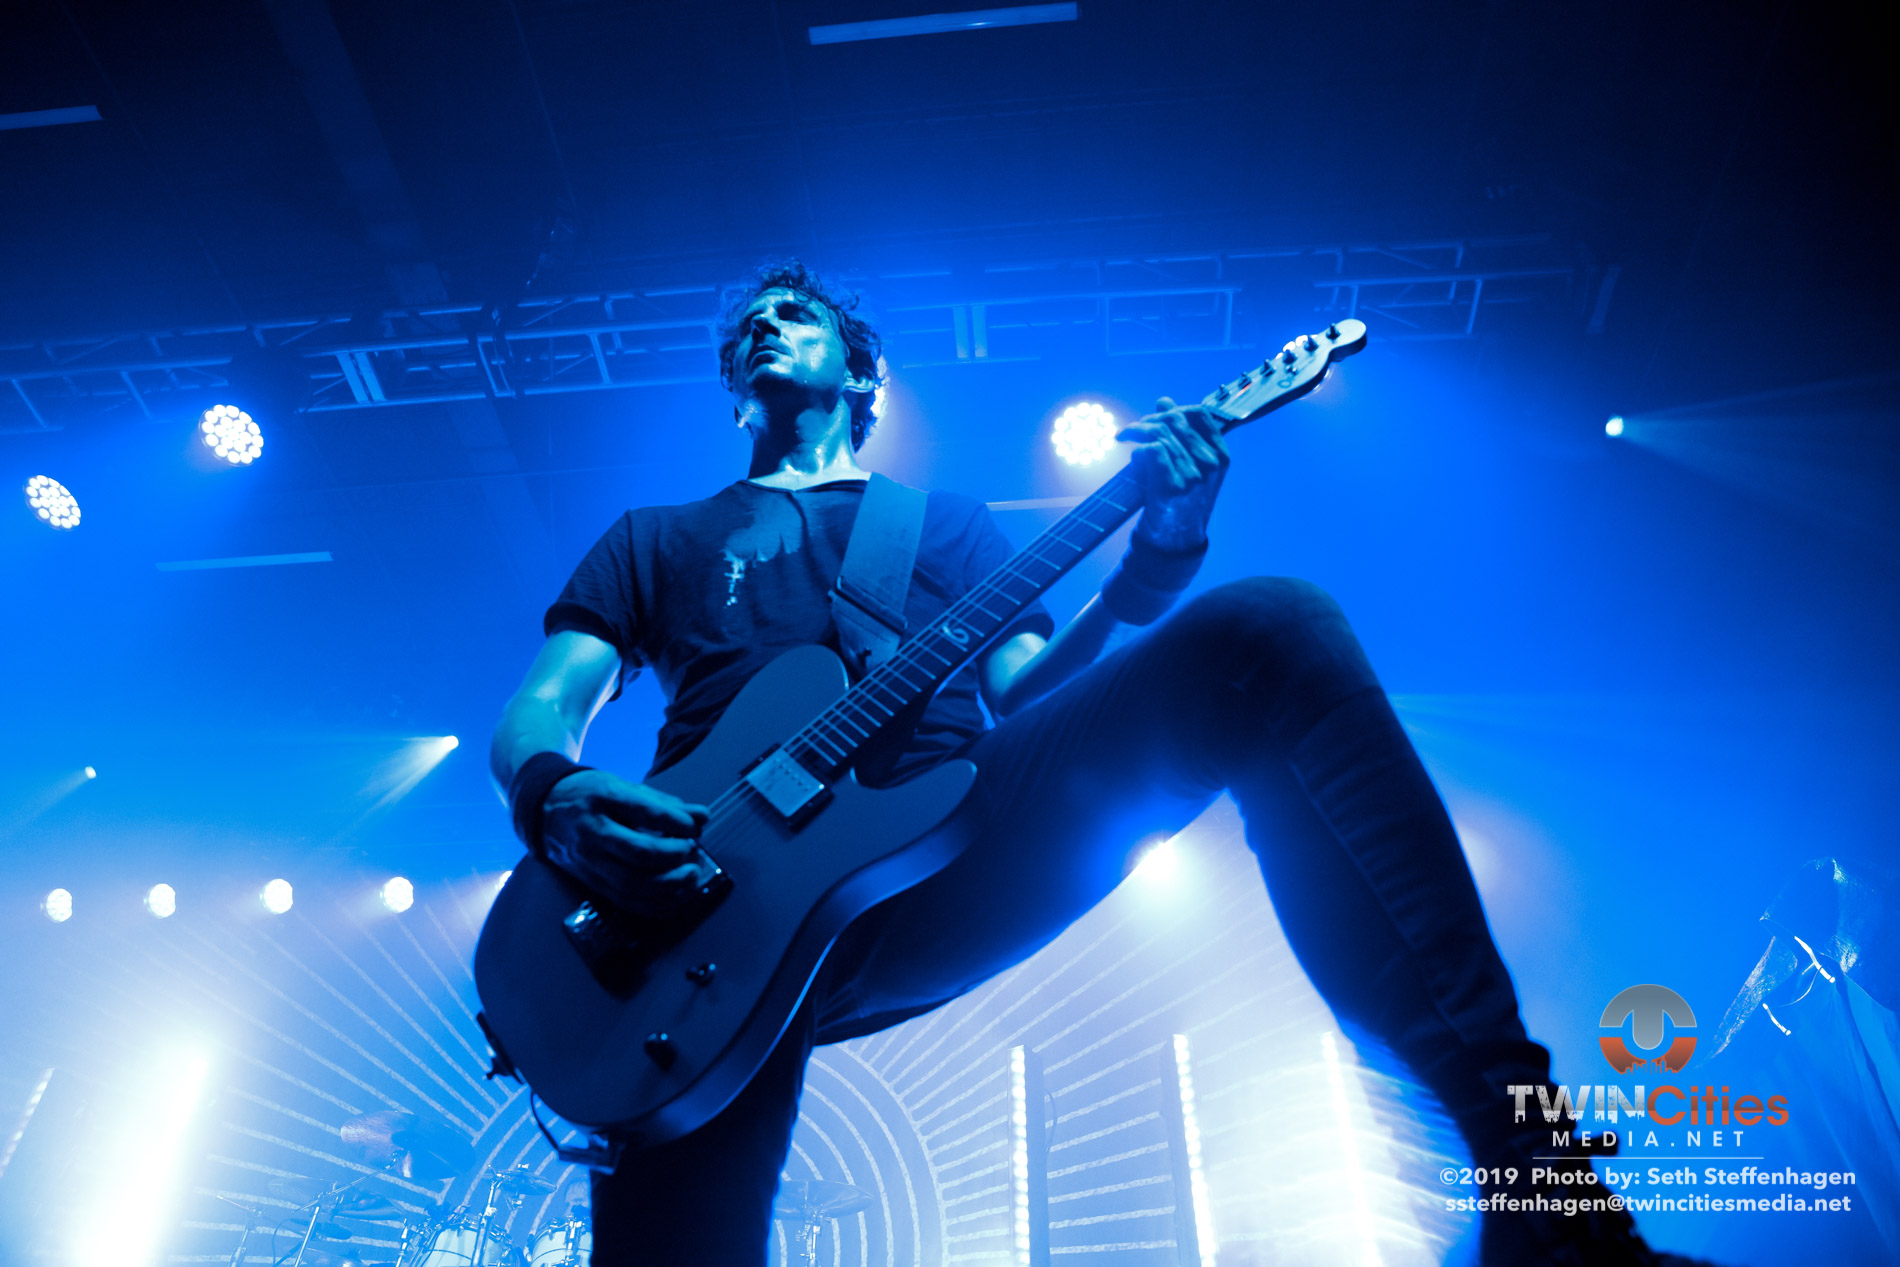 August 9, 2019 - Minneapolis, Minnesota, United States - Gojira live in concert at First Avenue along with Witchden as the openers.  (Photo by Seth Steffenhagen/Steffenhagen Photography)